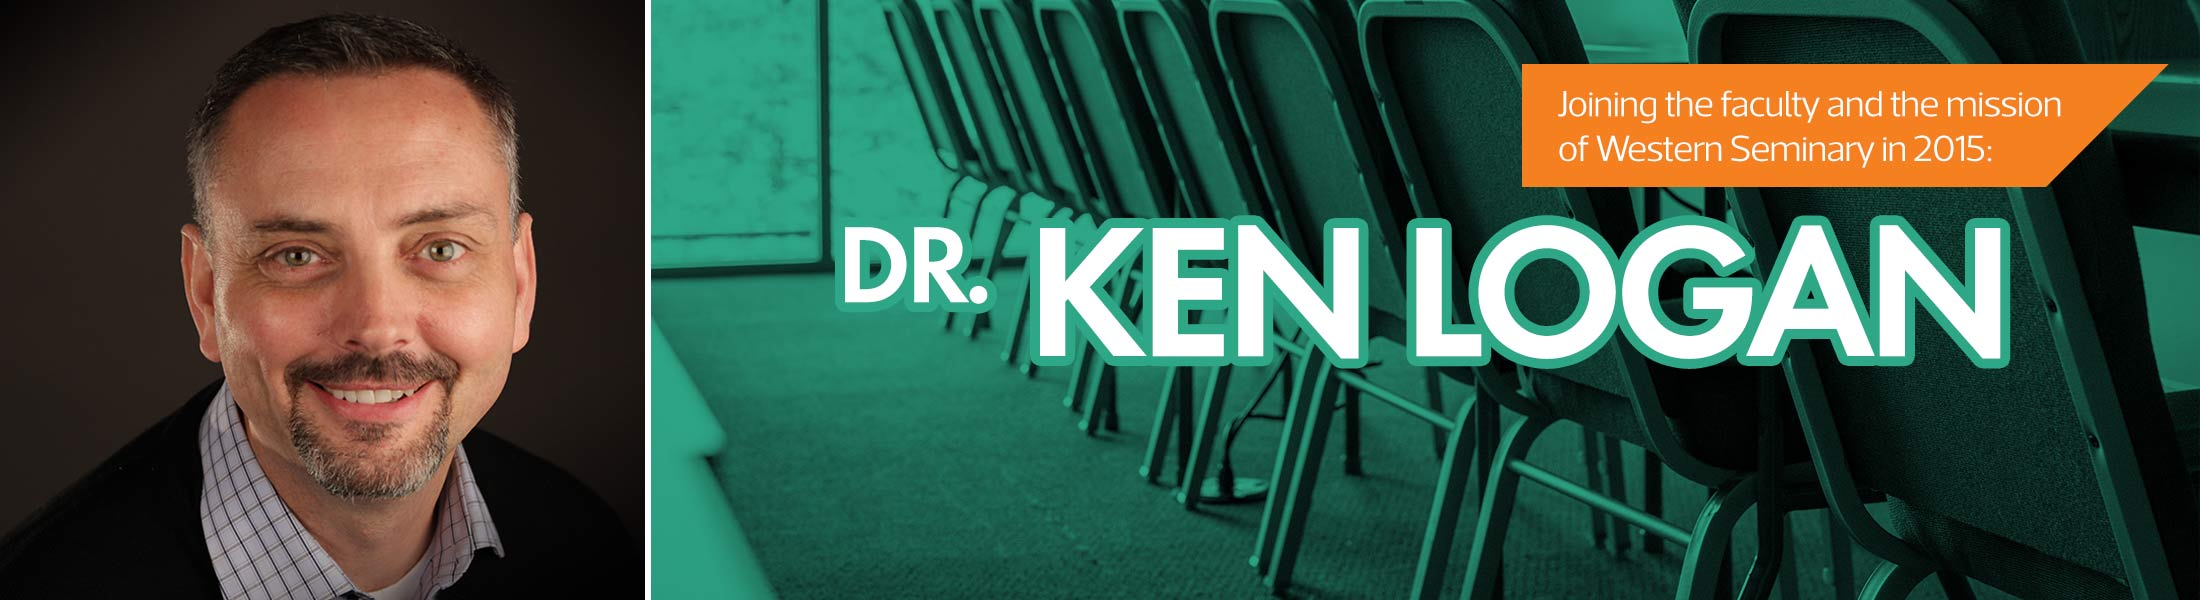 Dr. Ken Logan joins the faculty of Western Seminary